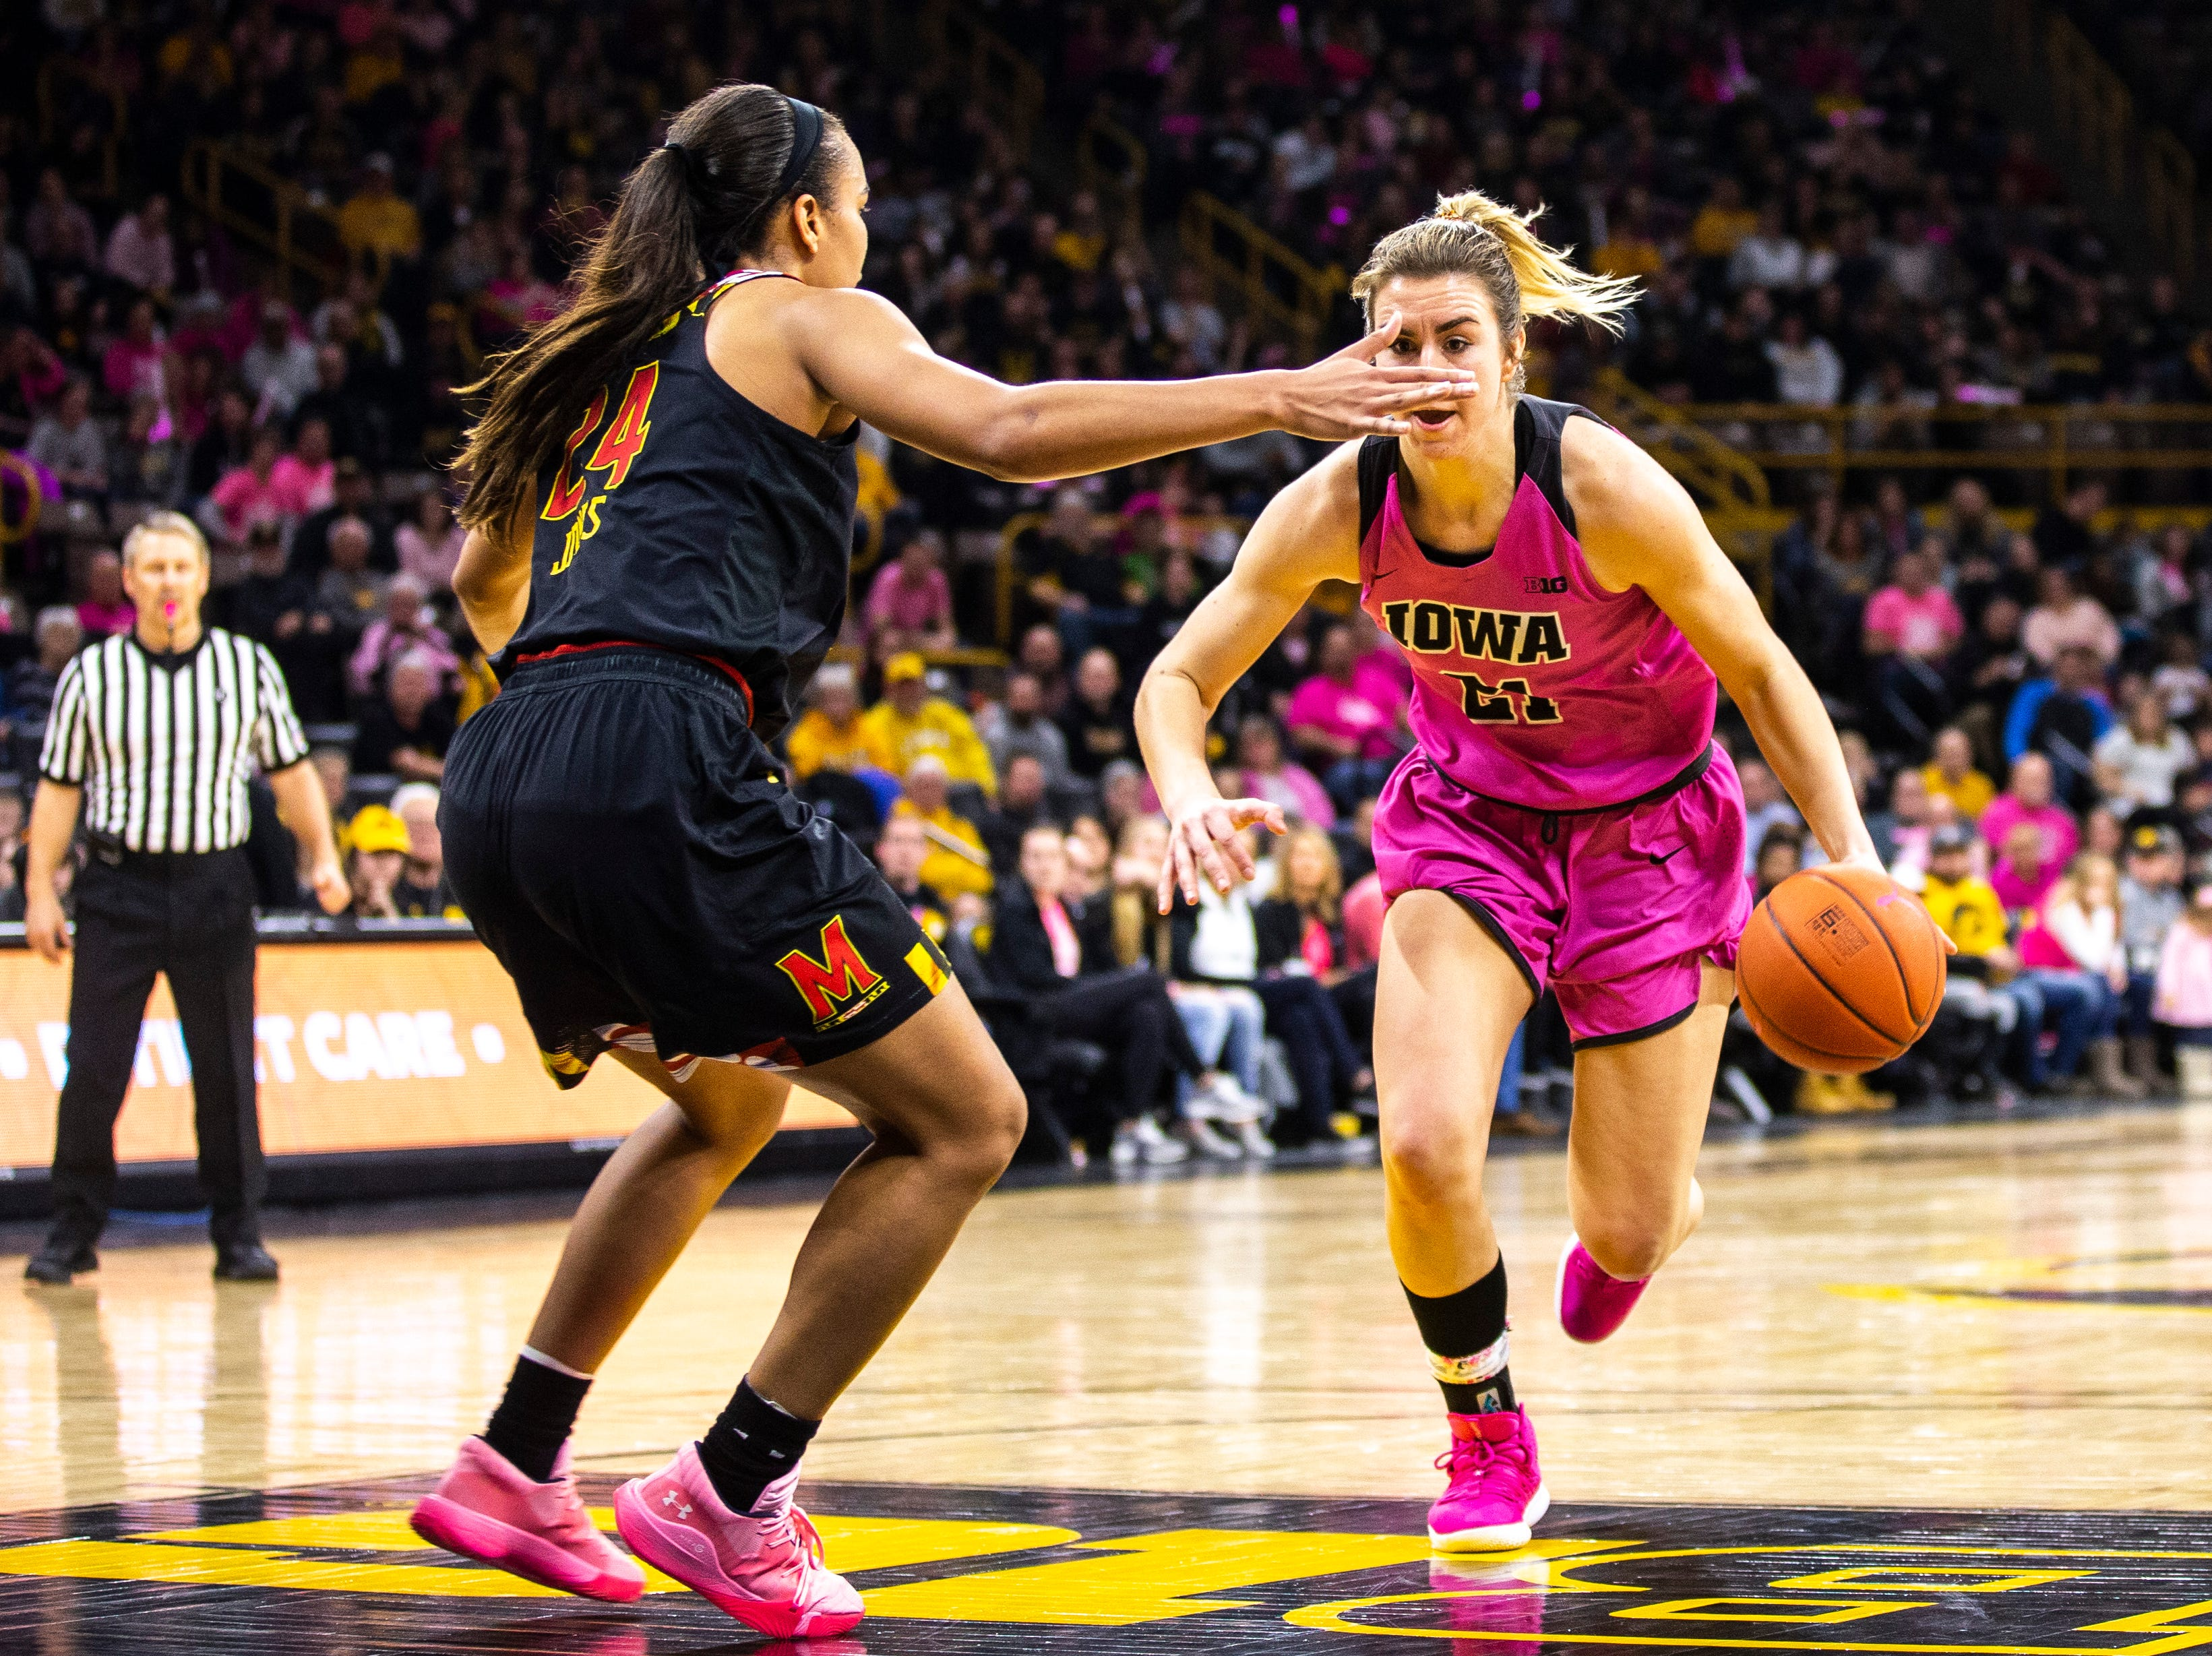 Iowa forward Hannah Stewart (21) drives to the basket while Maryland forward Stephanie Jones (24) defends during a NCAA Big Ten Conference women's basketball game on Sunday, Feb. 17, 2019 at Carver-Hawkeye Arena in Iowa City, Iowa.